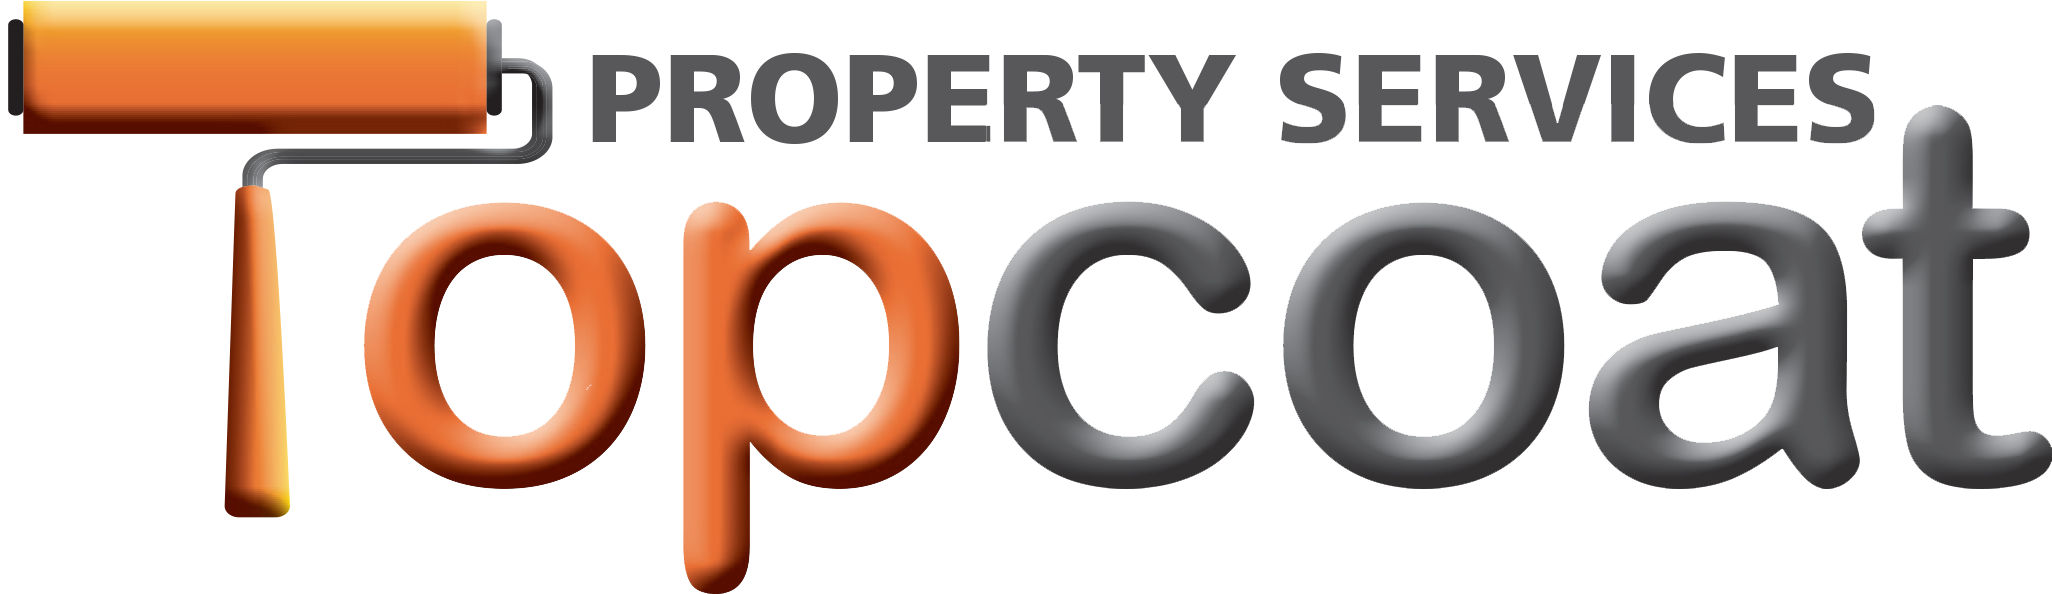 Top Coat Property Services Spain